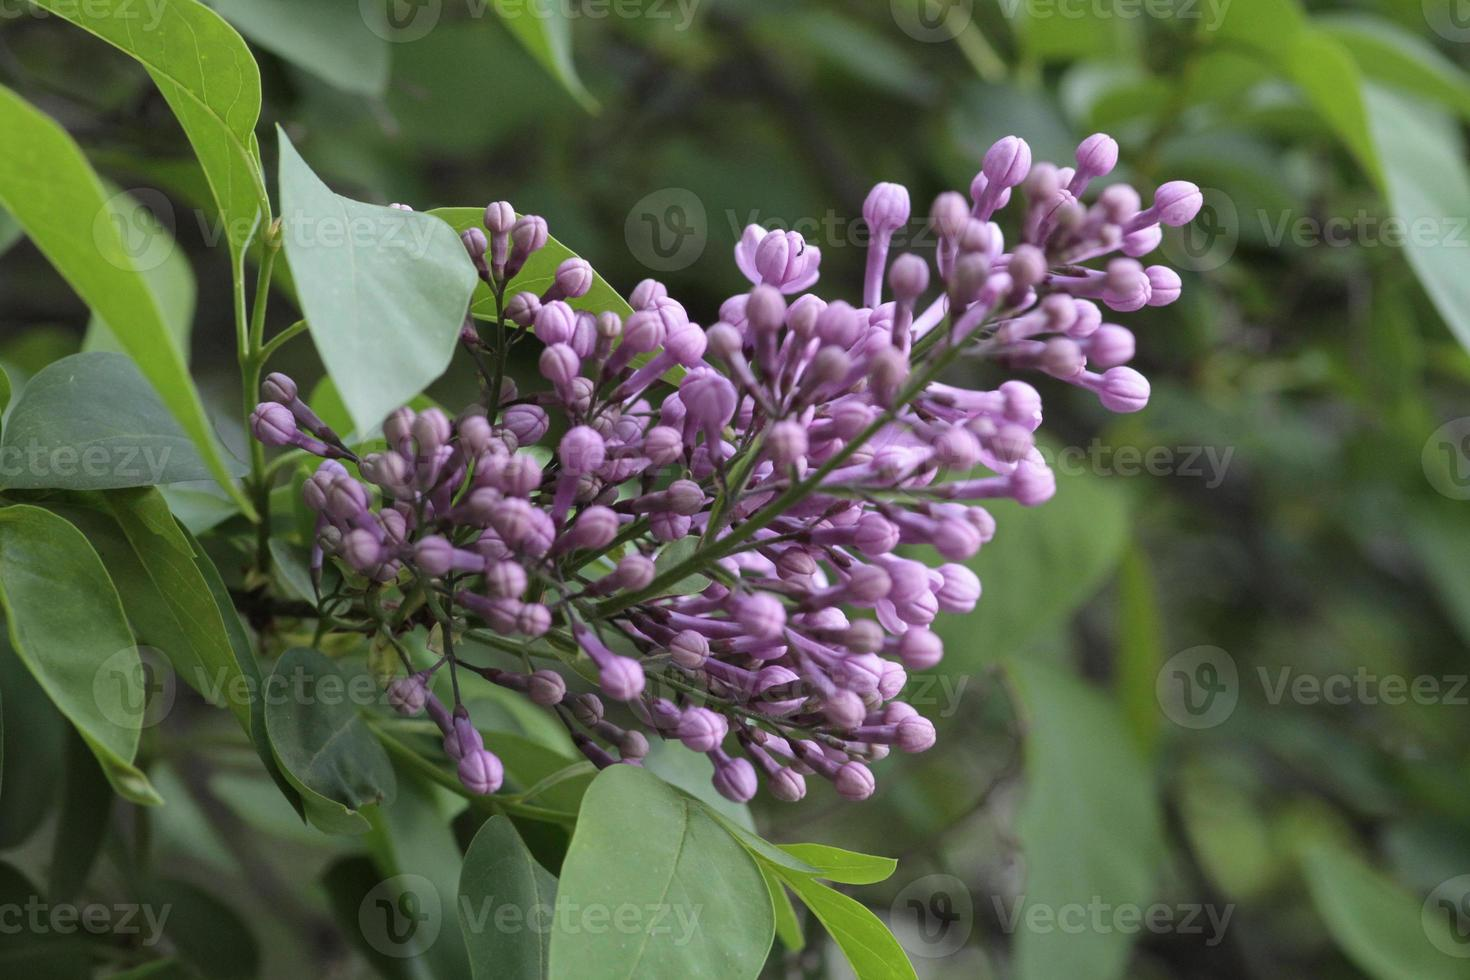 Blooming lilacs in my garden photo